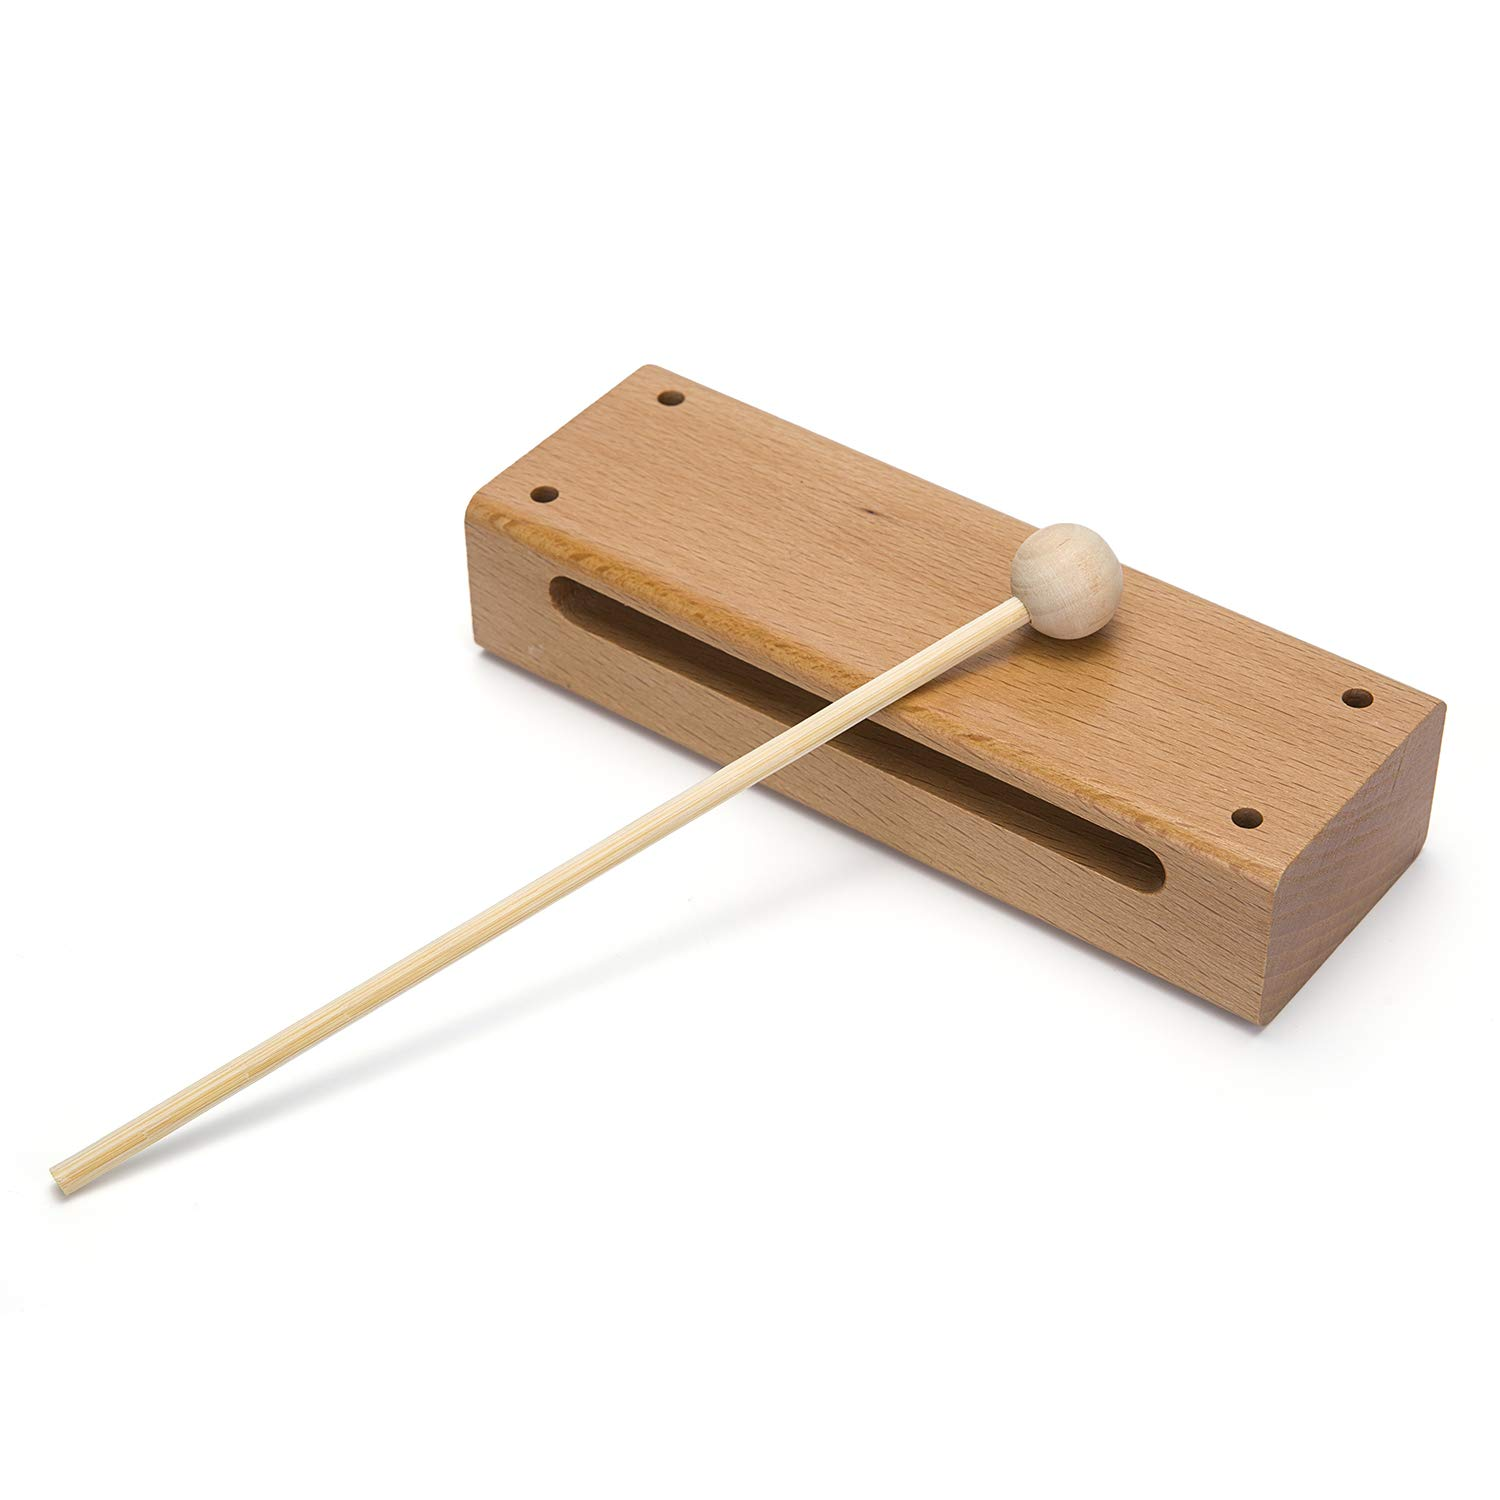 Wood Block Musical Instrument with Mallet Solid Hardwood Percussion Rhythm Blocks by Mihey